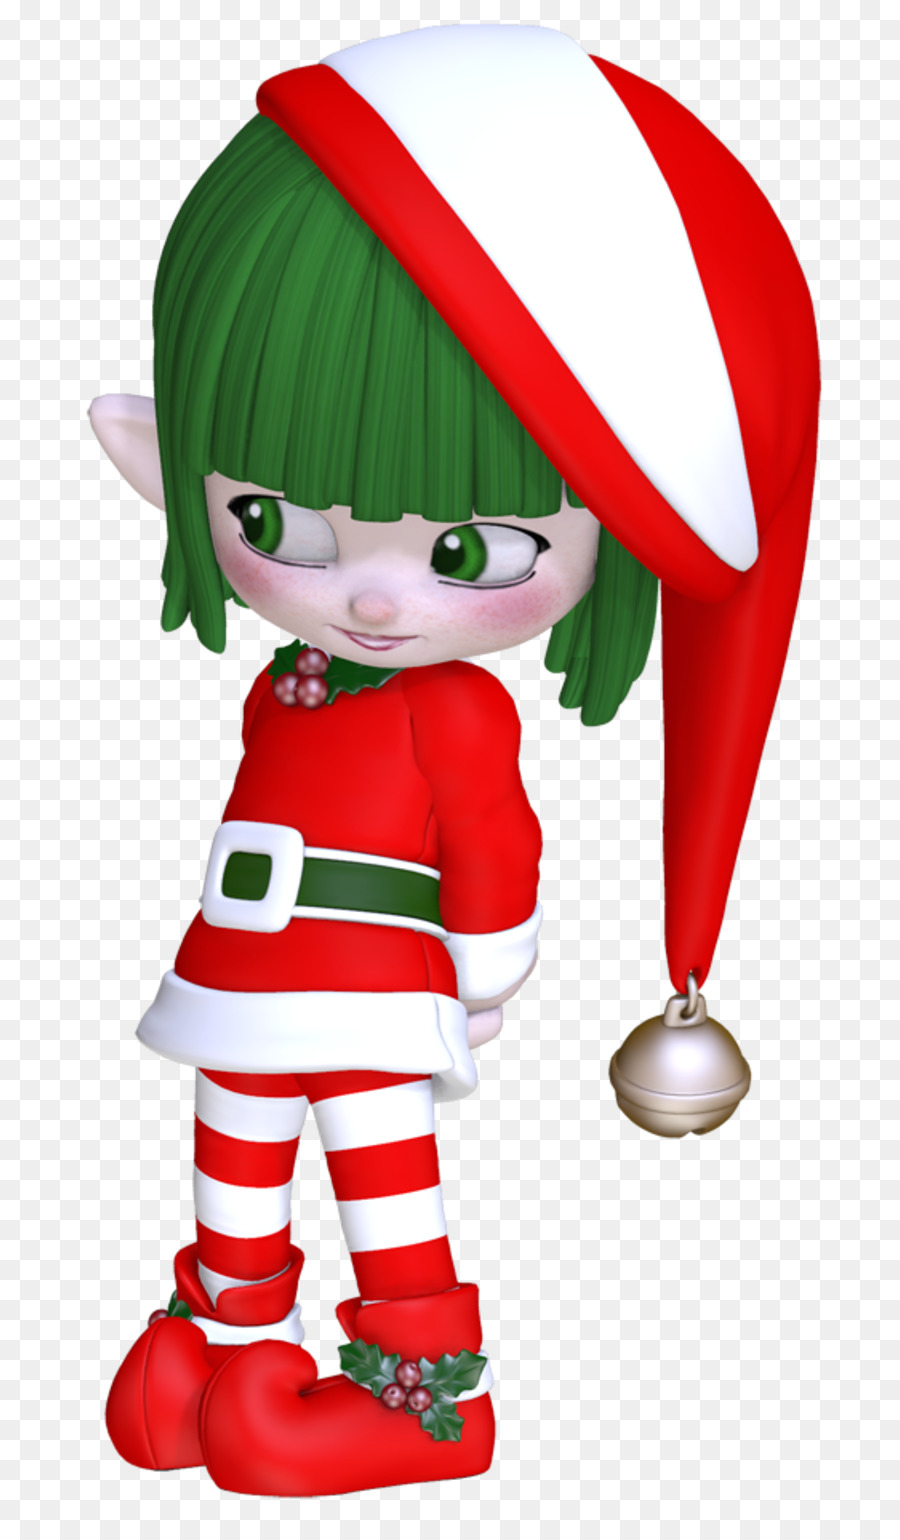 Elf clipart Christmas elf The Elf on the Shelf Santa Claus